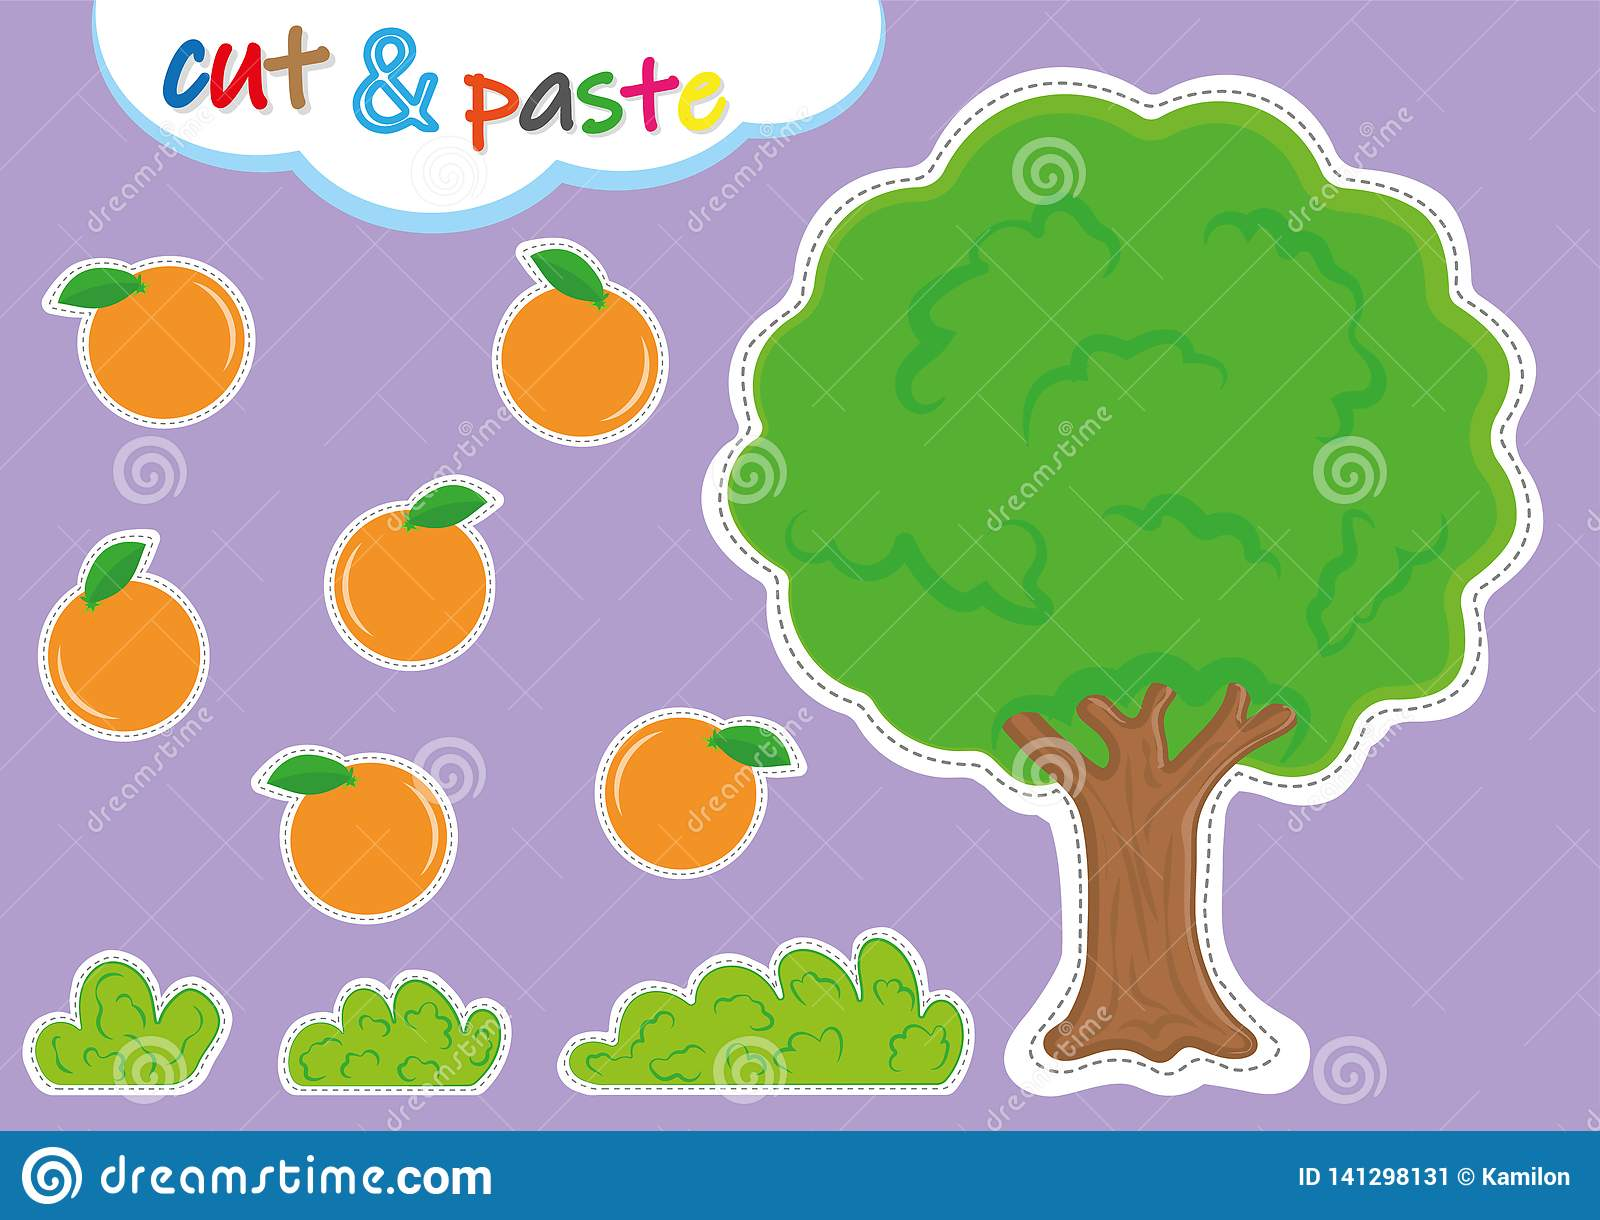 Cut And Paste Activities For Kindergarten Preschool